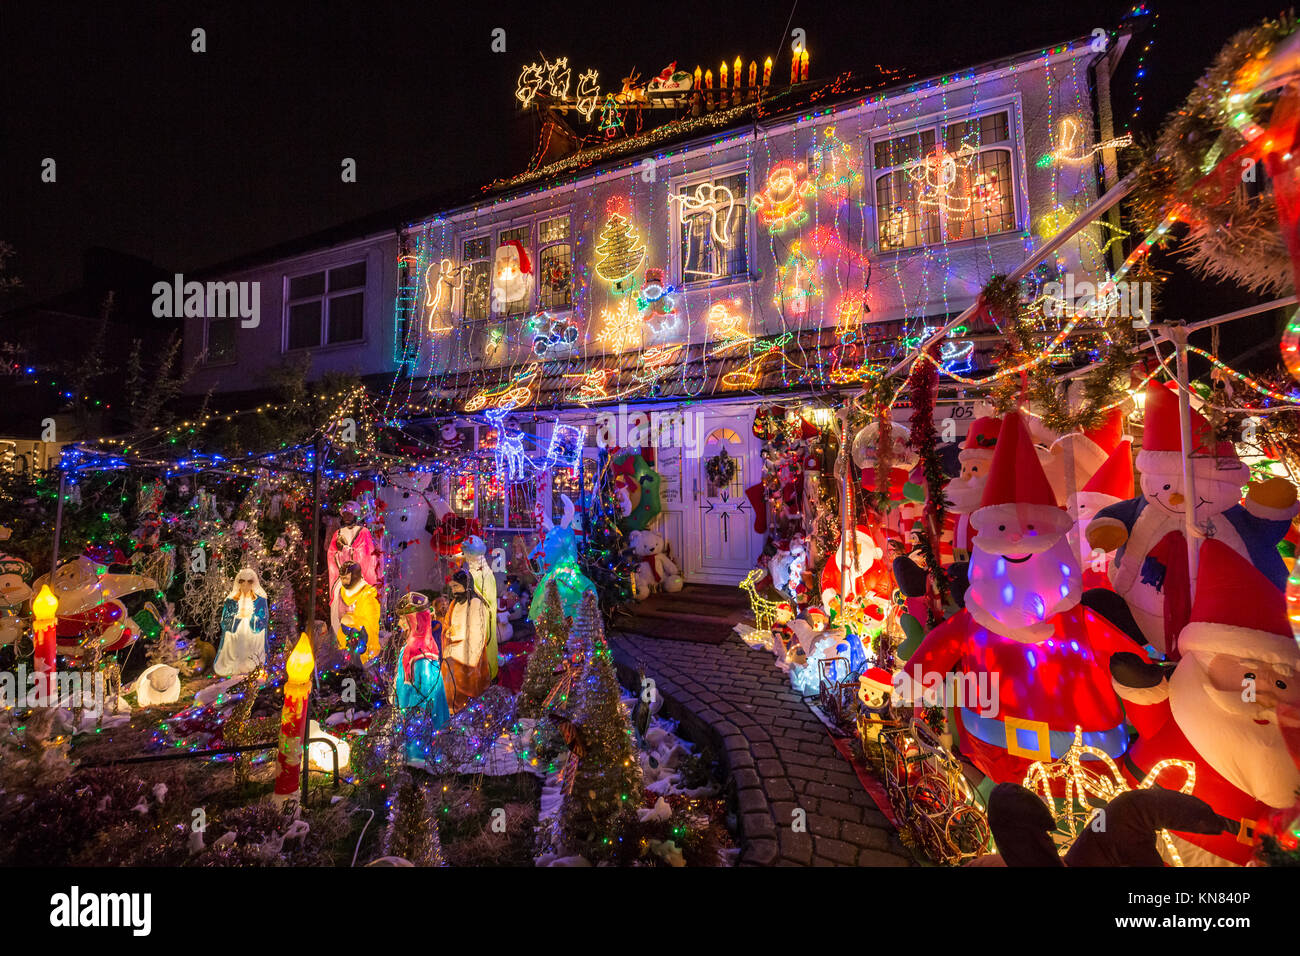 London, UK  10th Dec, 2017  Massive Christmas house lights display